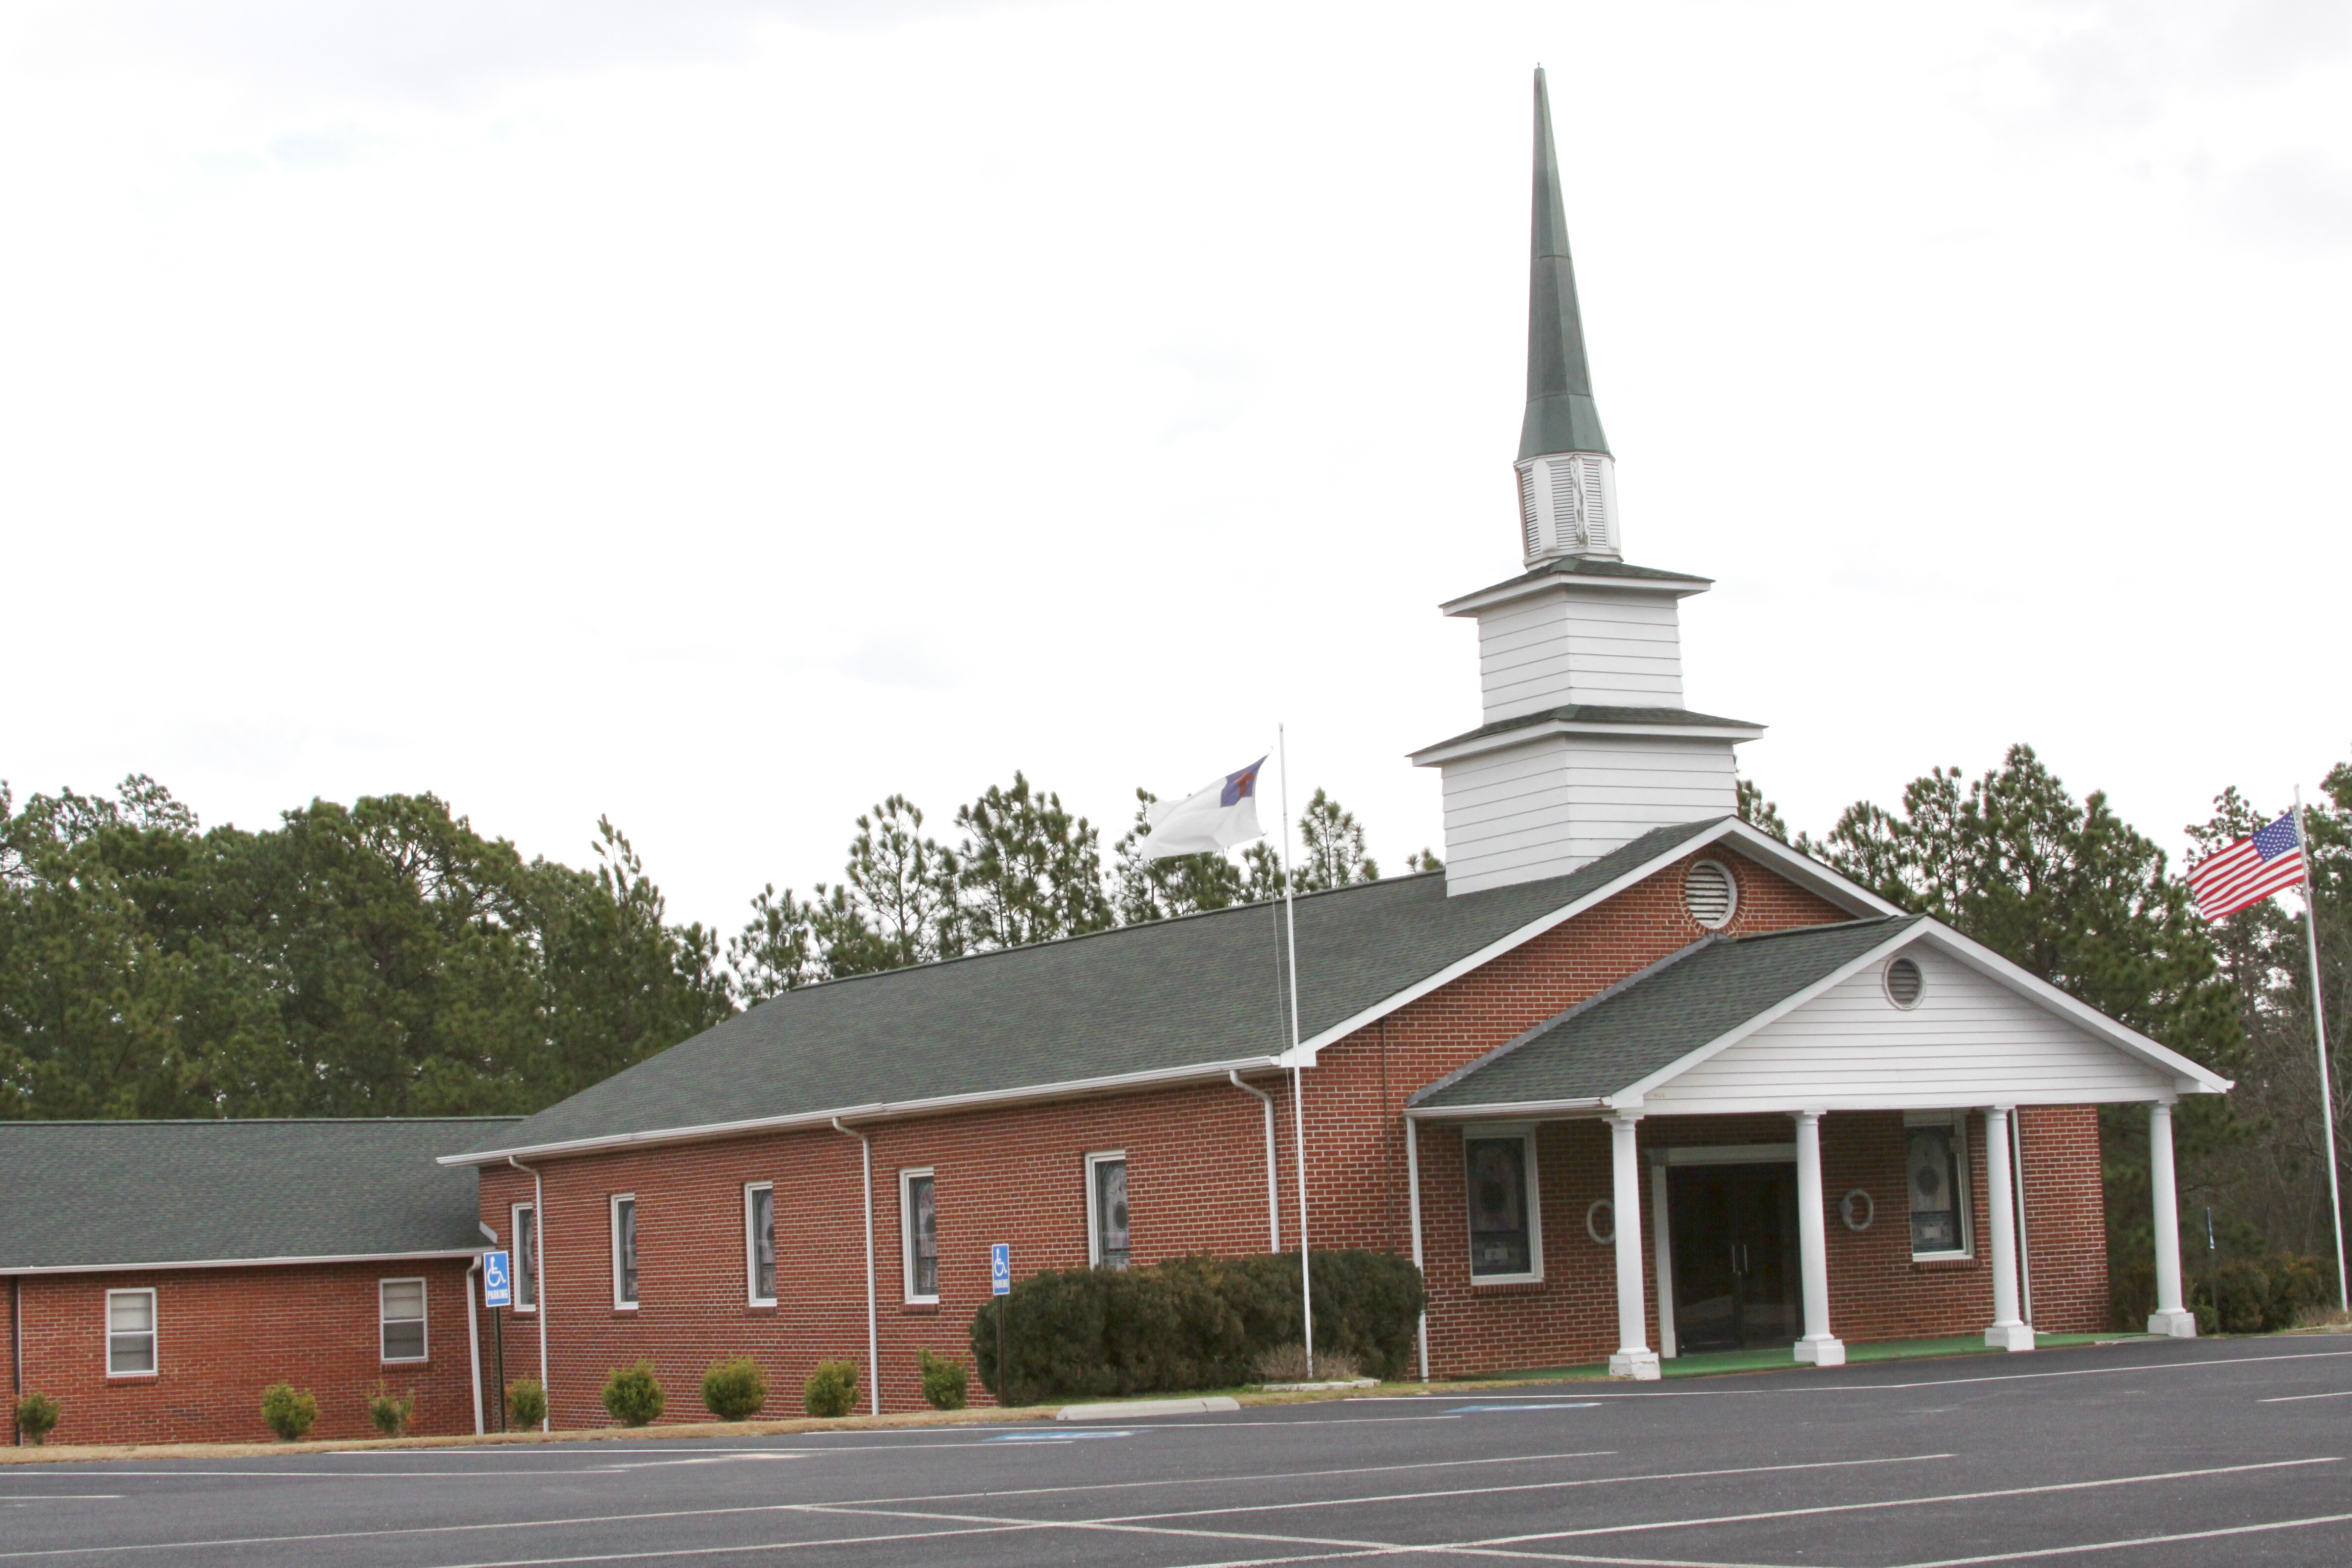 A Southern Baptist Church, Founded in 1912